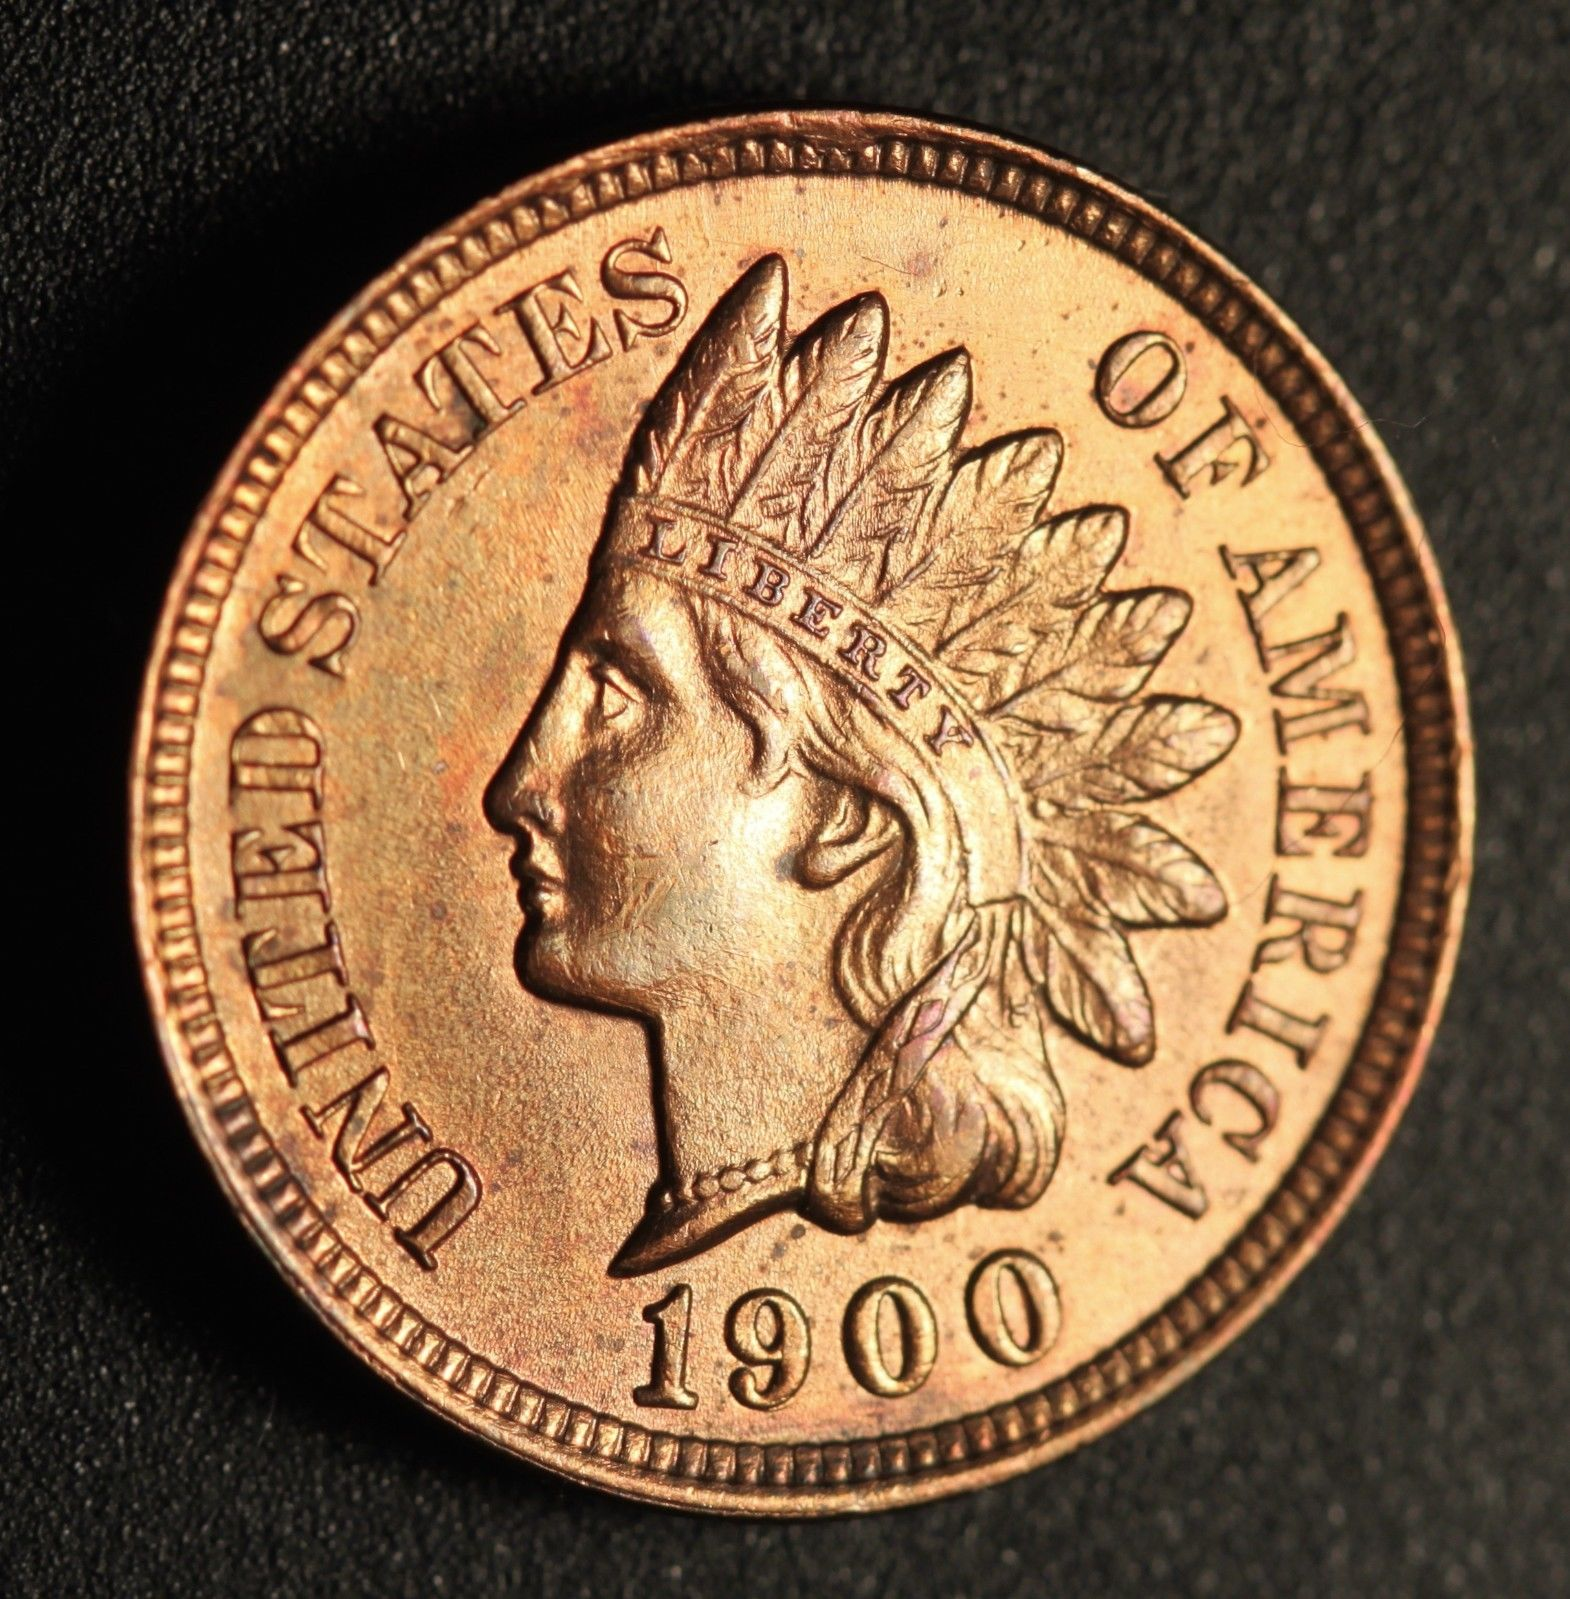 1900 RPD-025 - Indian Head Penny - Photo by Ed Nathanson